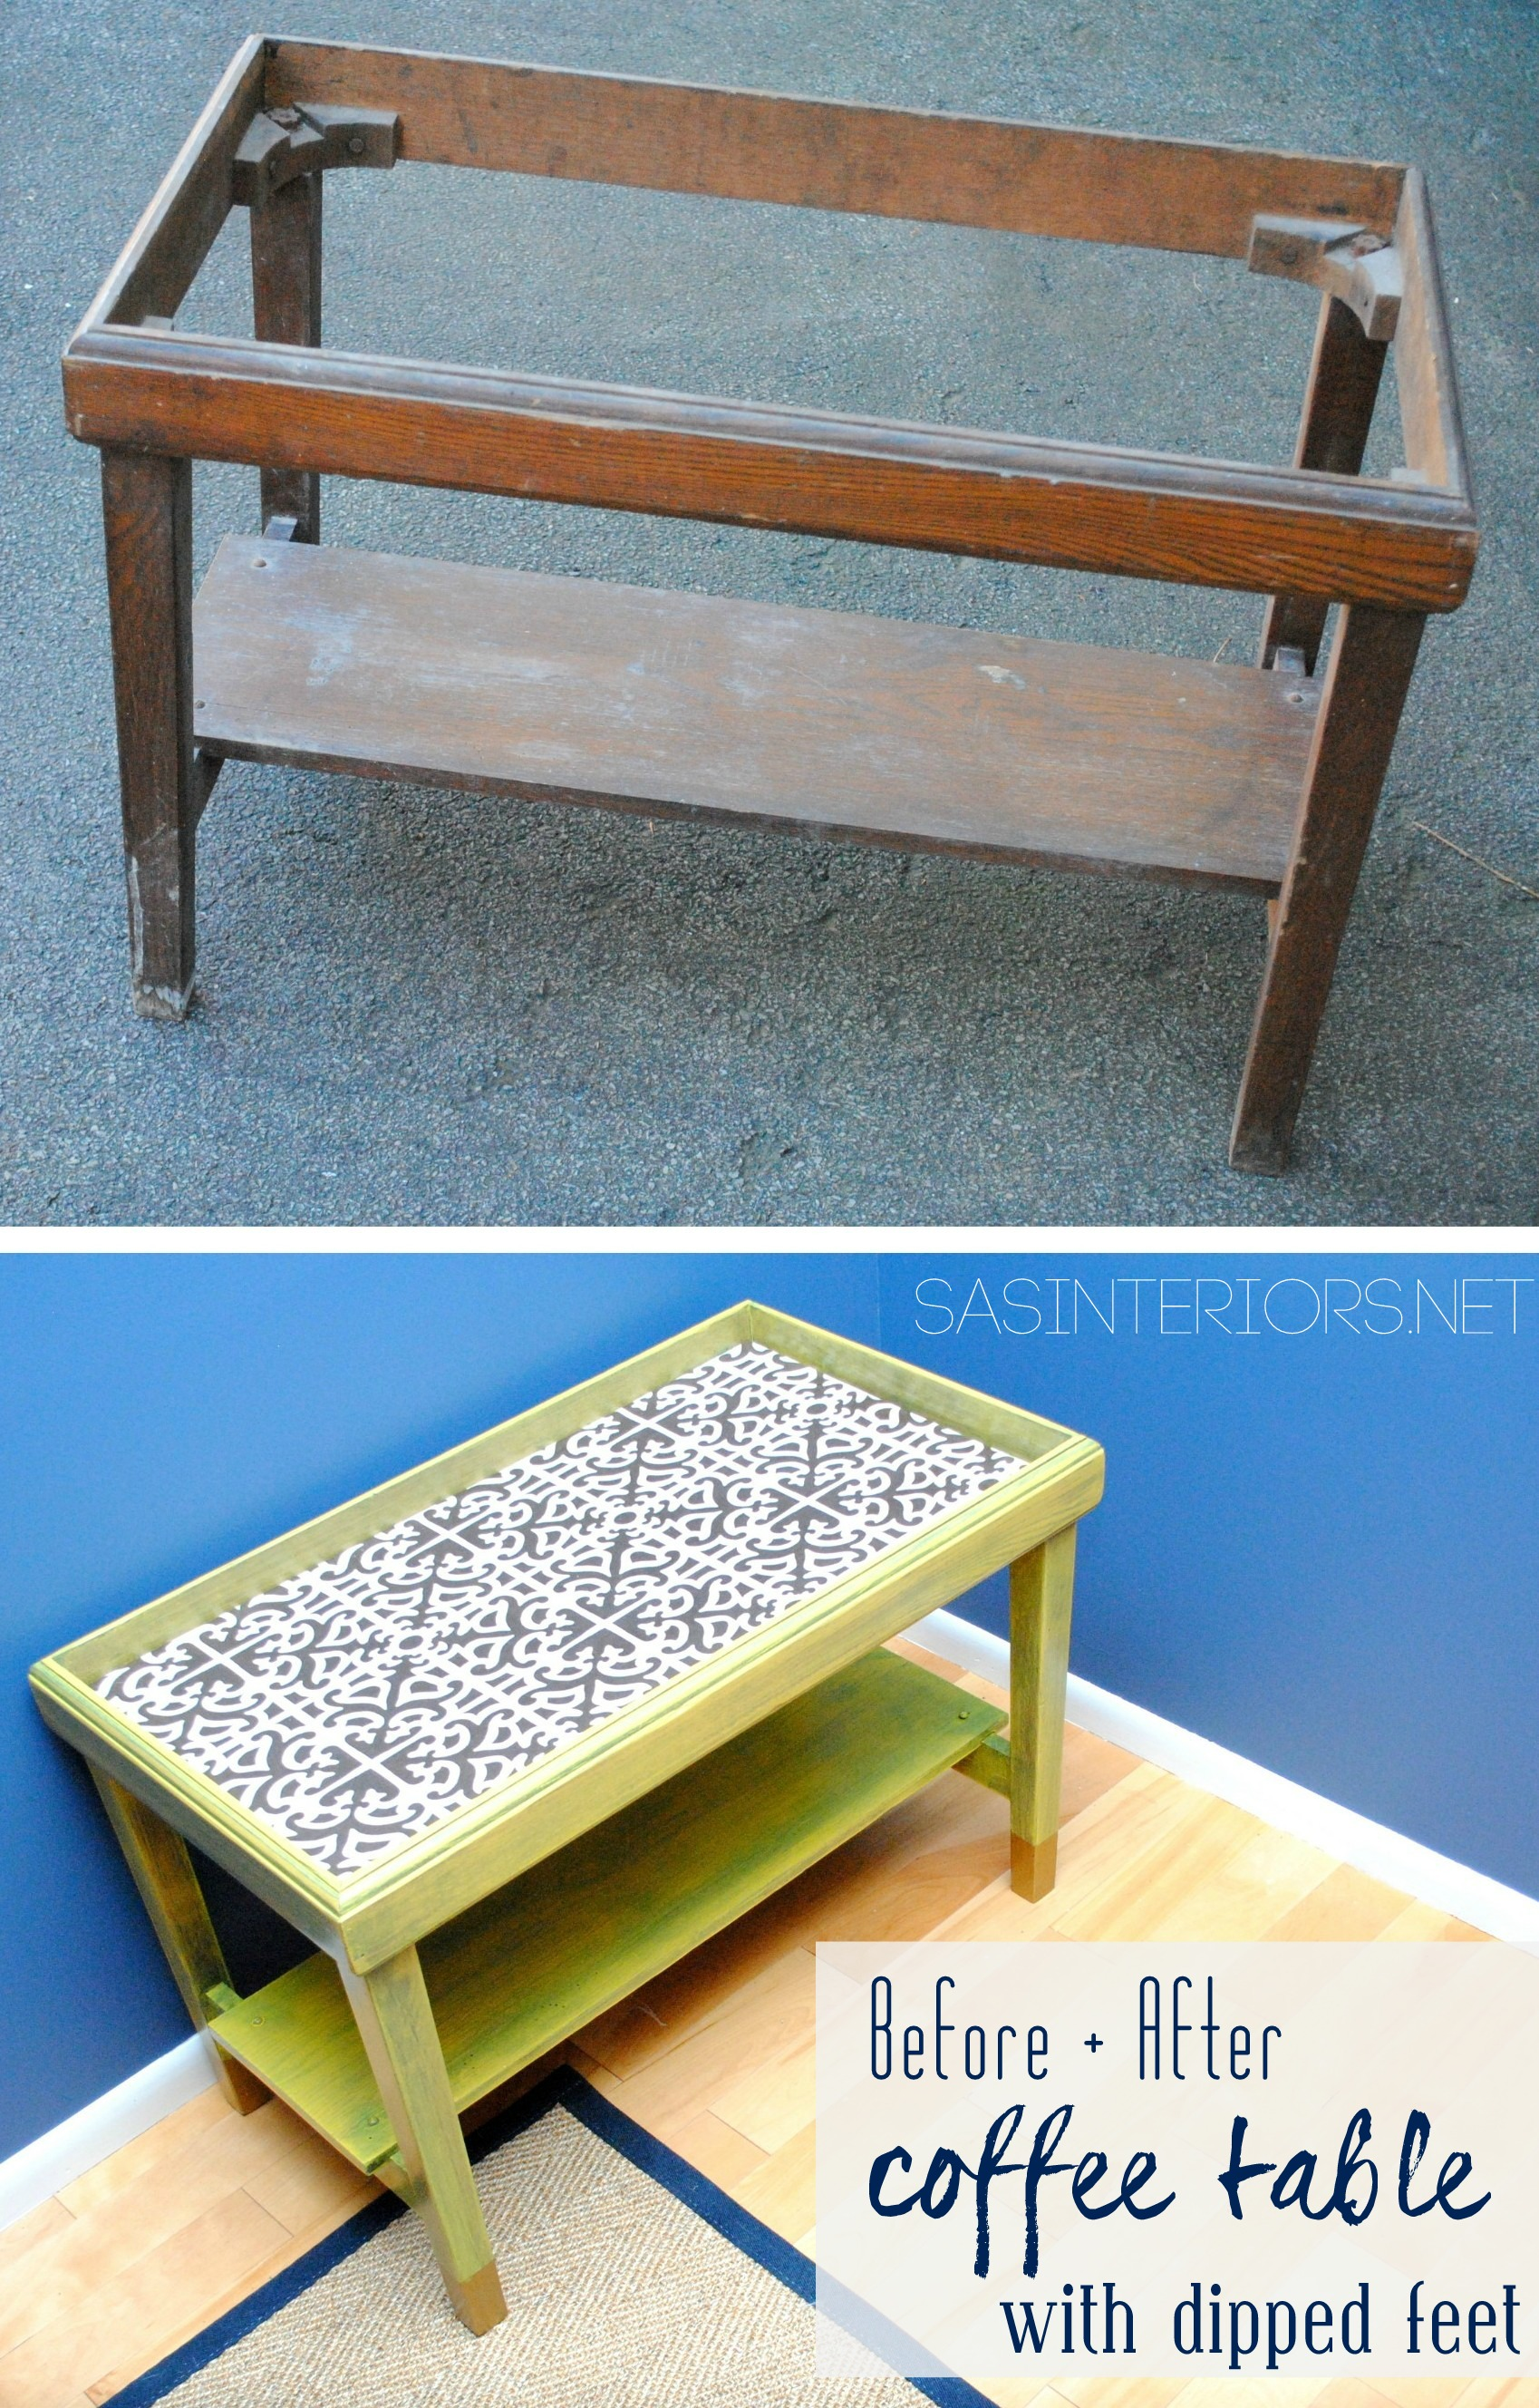 Before & After Coffee Table Revamp with Sunshine yellow Stain by